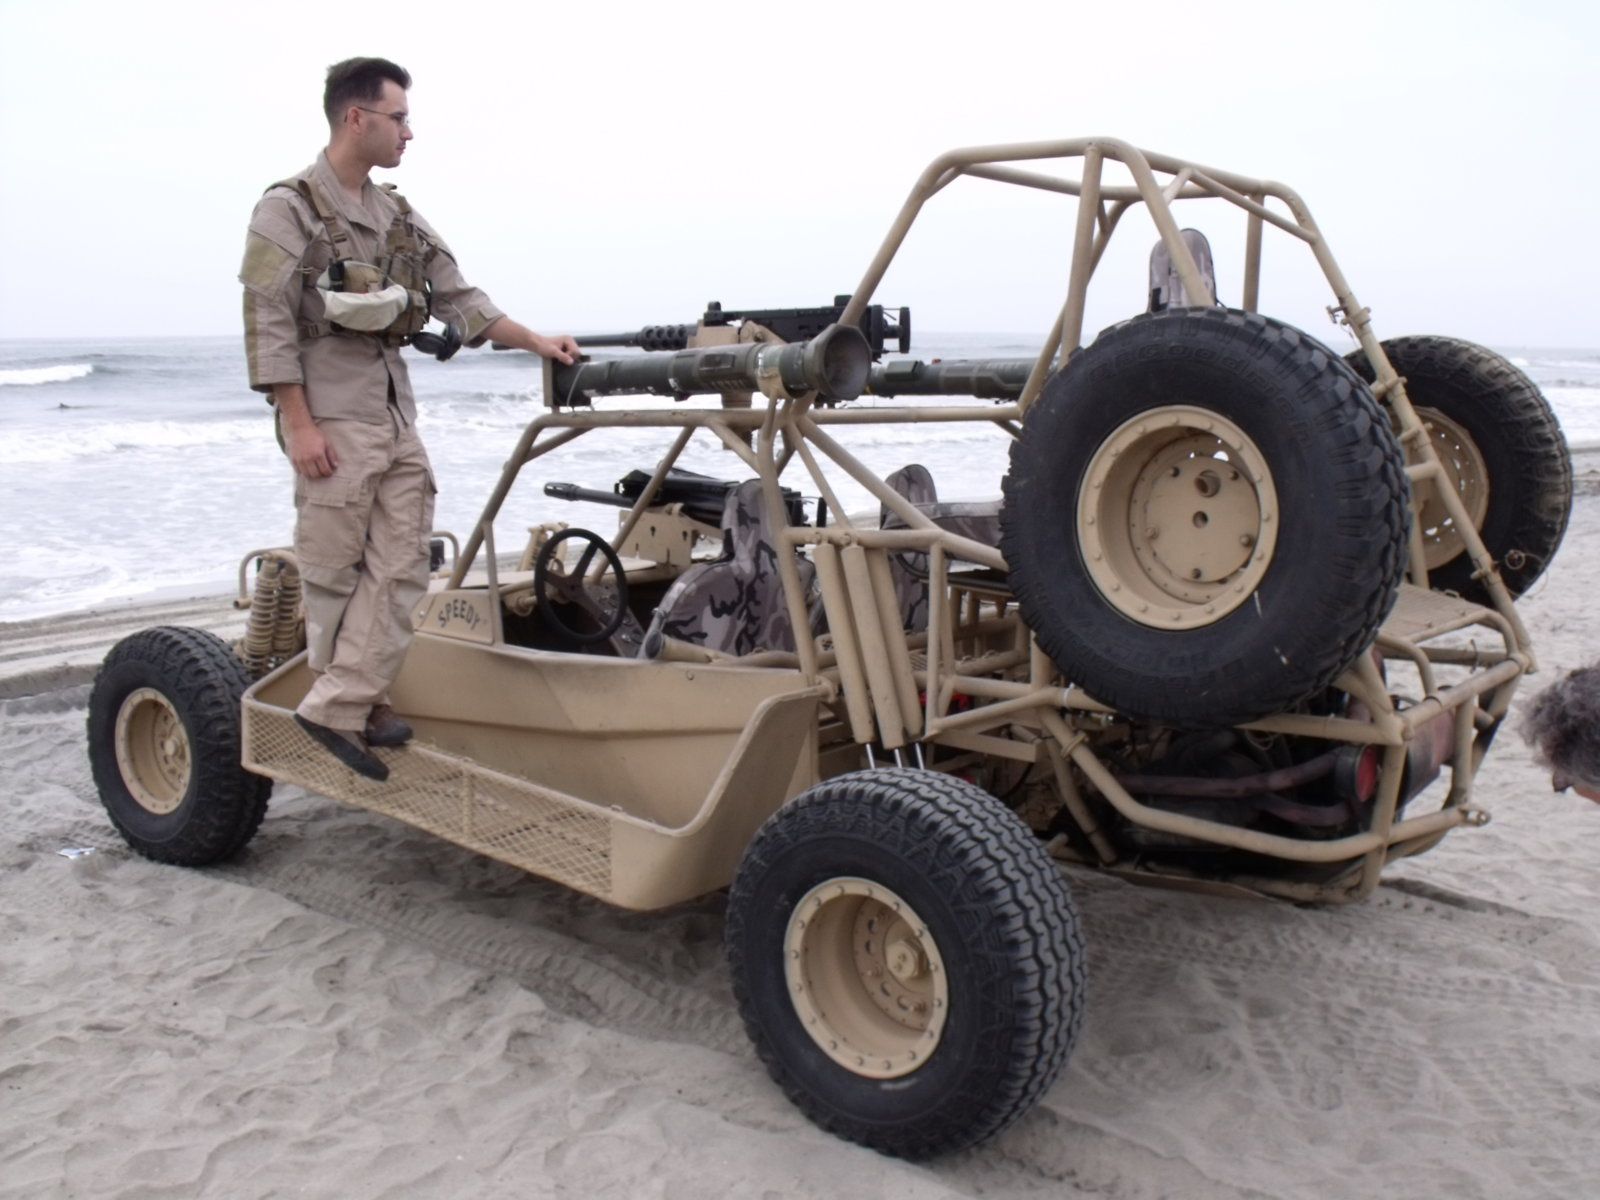 hobby racing cars with Chenowth Desert Patrol Vehicle Restoration on Sidewinder Dune Buggy Concept as well Amazing Car Themed Room Decor Ideas together with Chenowth Desert Patrol Vehicle Restoration further 01mini 66302 together with Traxxas  s Up The X Maxx For 8s Lipo Power.